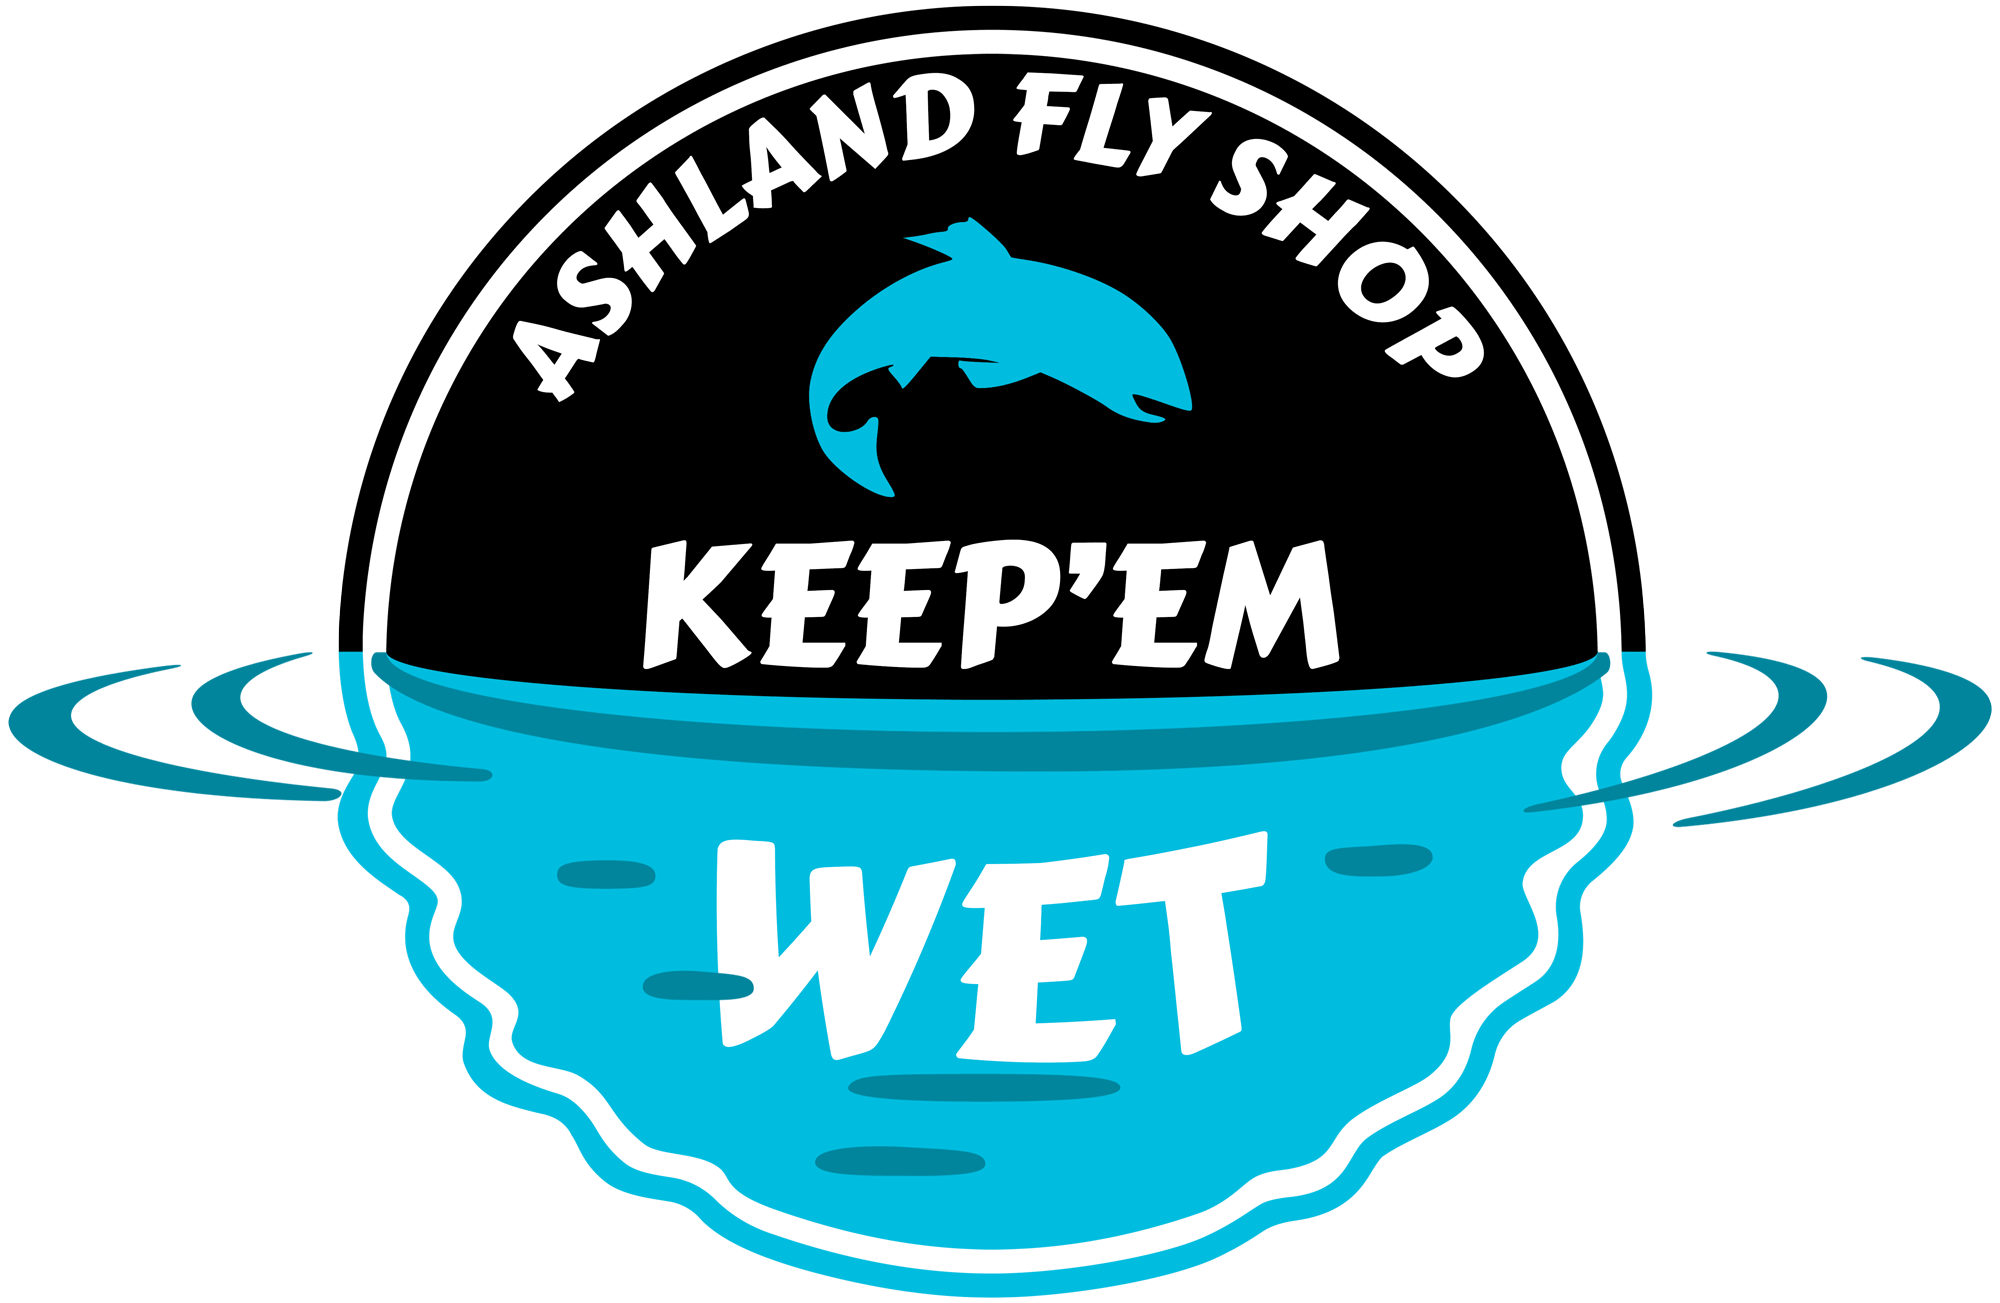 AFS Keep'em Wet Sticker